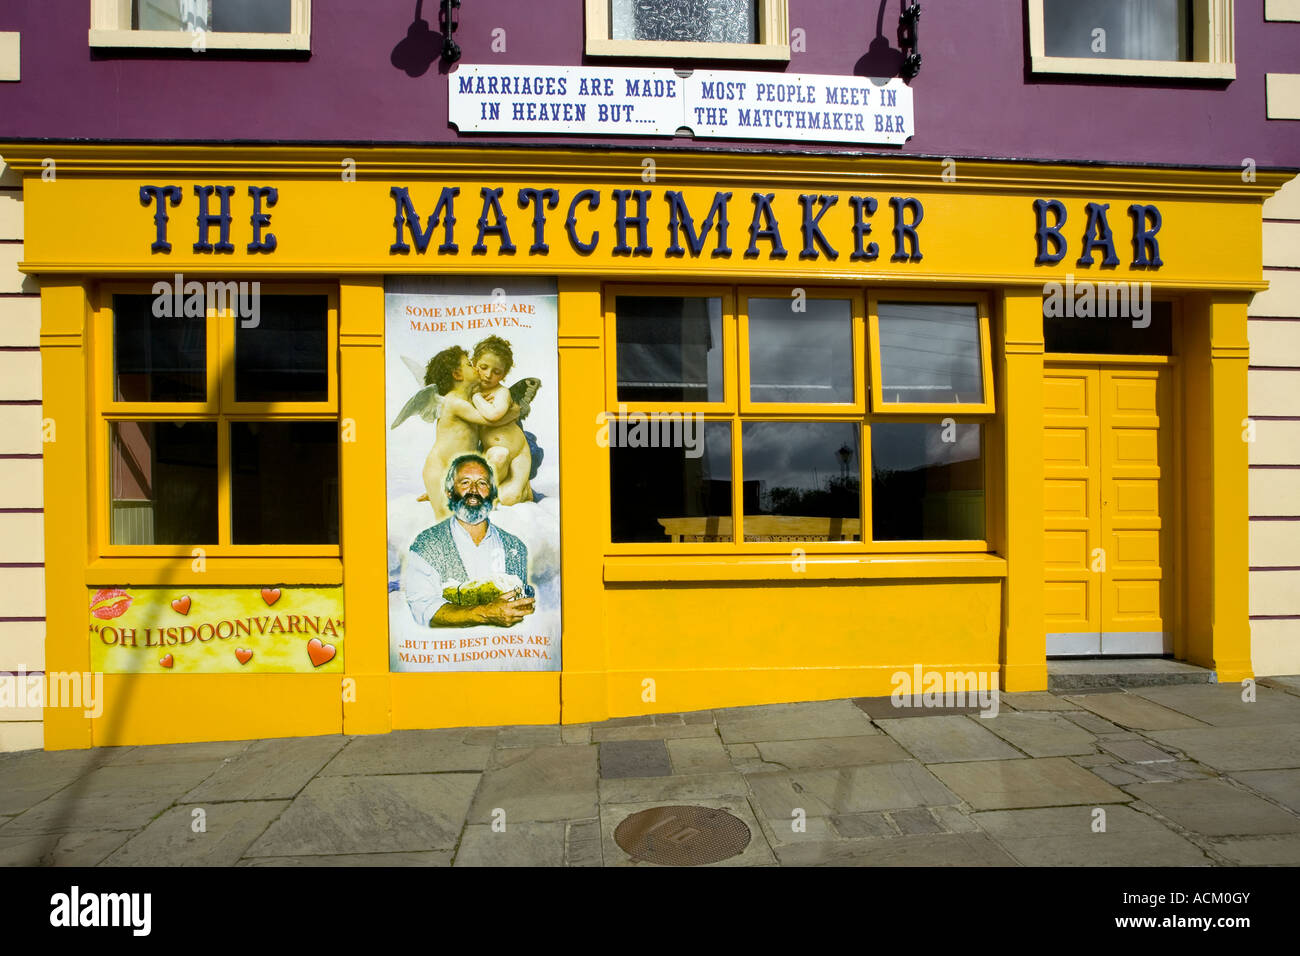 Matchmaking Festival | Singles | Dating | Willie Daly